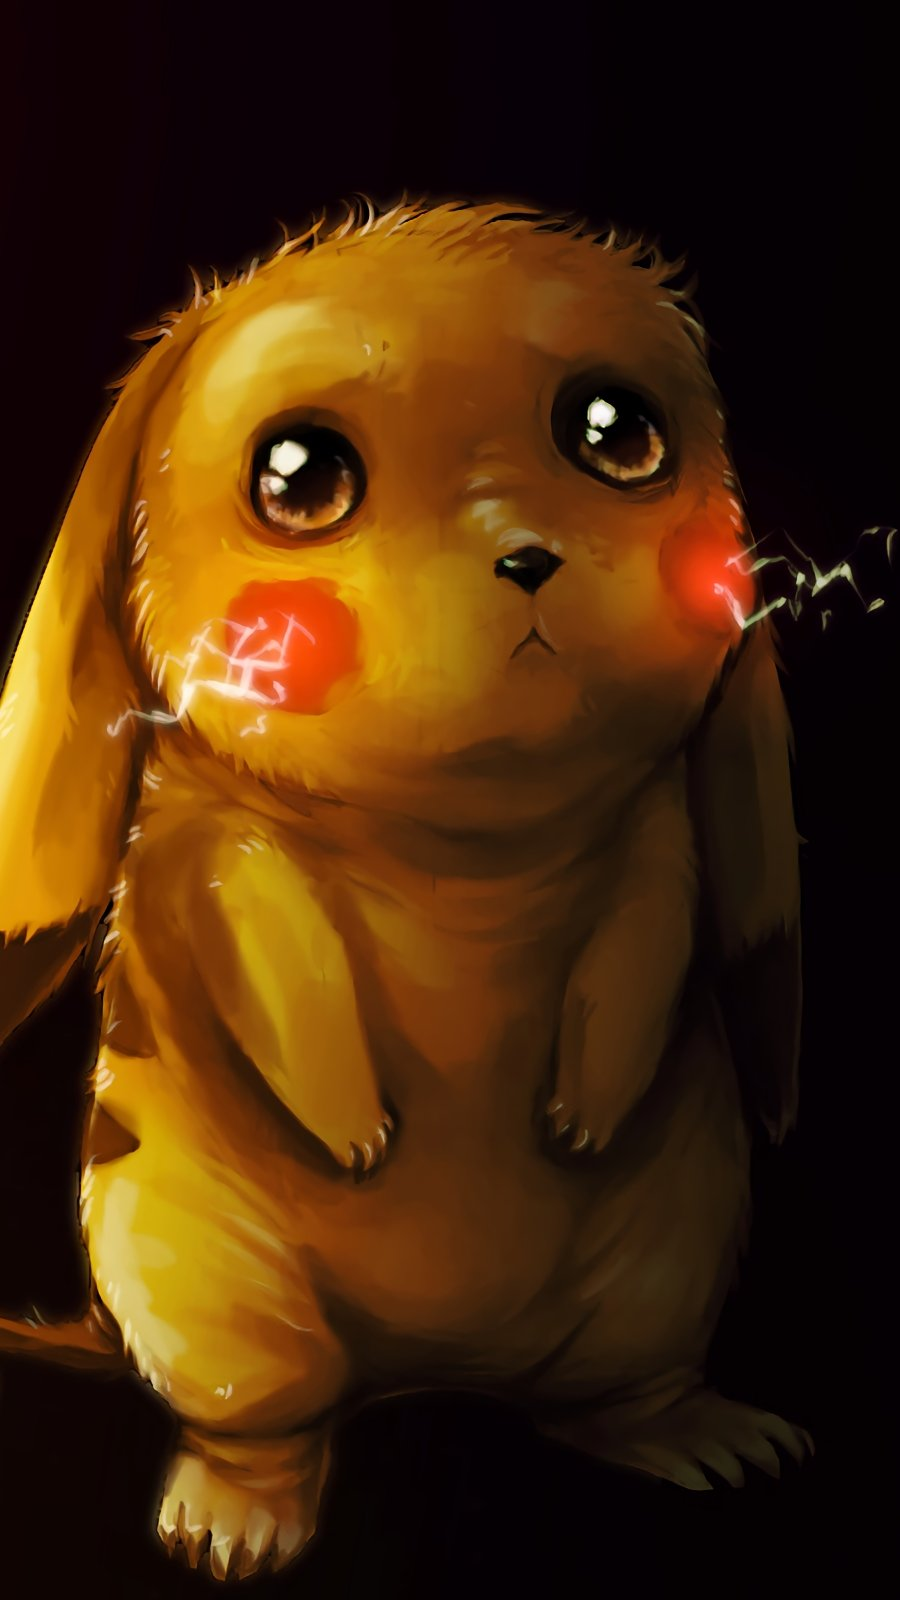 Anime Wallpaper Sad Pikachu fanart Vertical